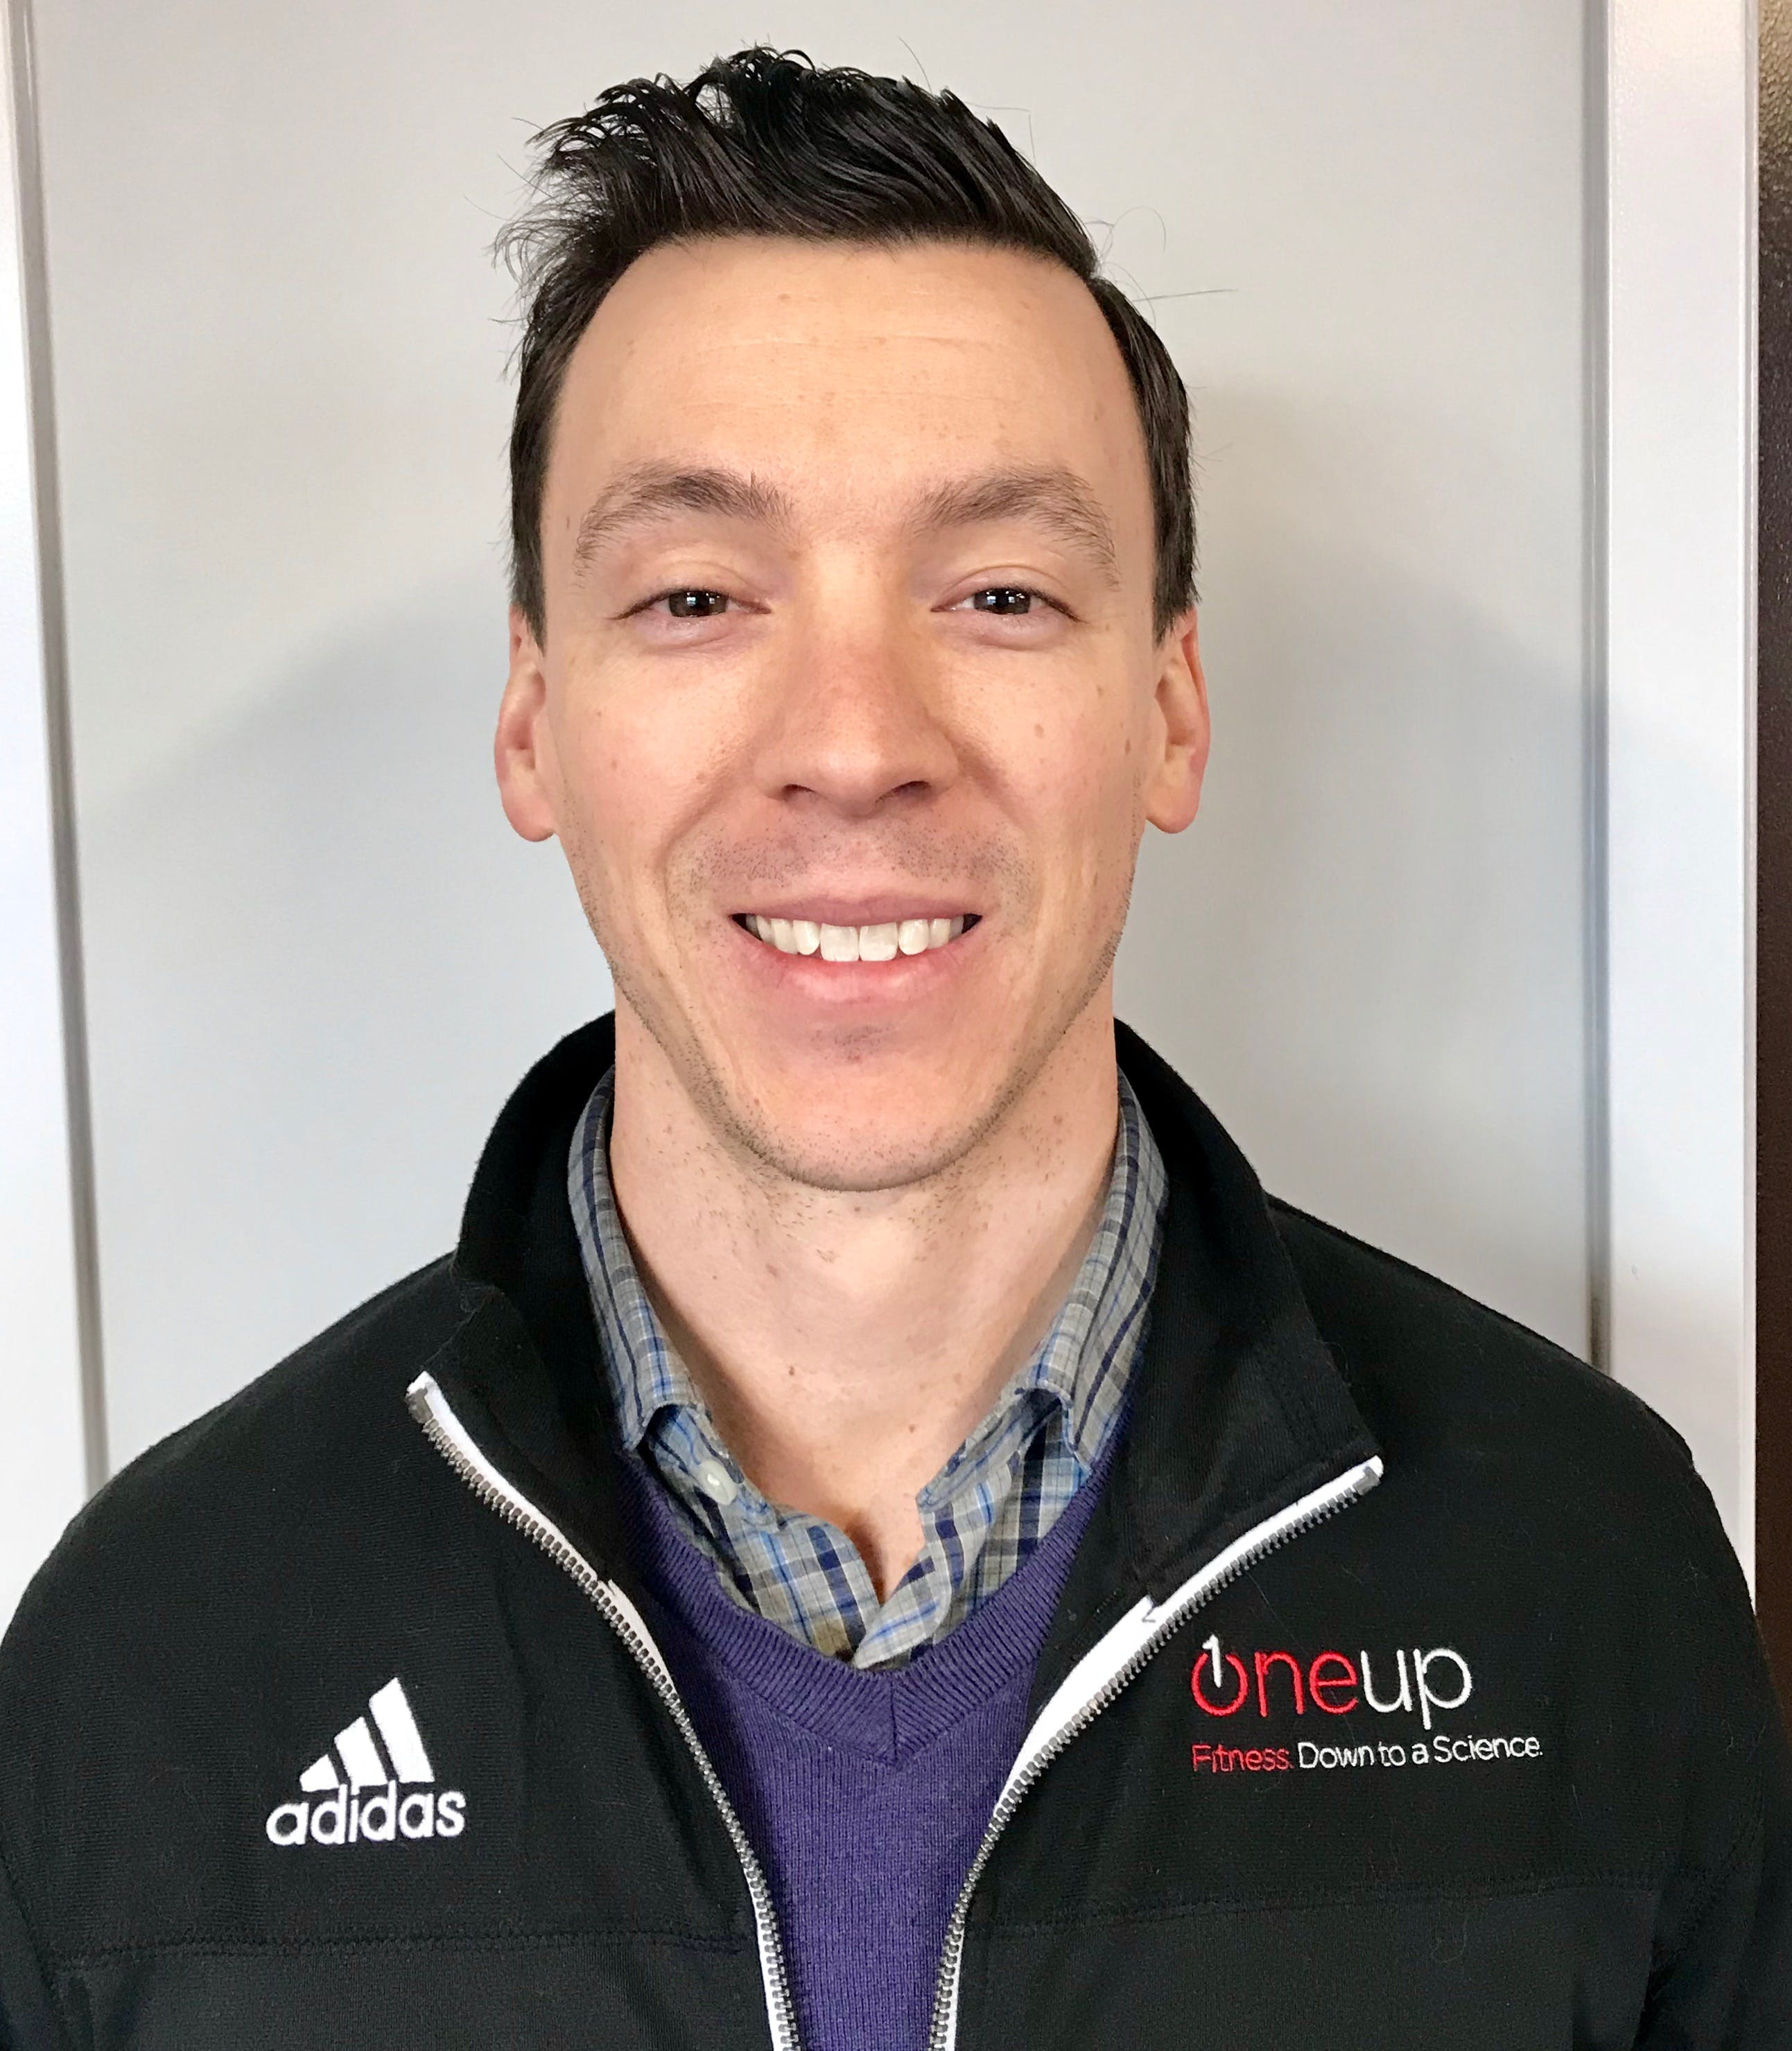 Matt Mombourquette is owner and lead trainer with OneUpFitness. He is seeking an exemption to recent restrictions as his sessions are one-on-one and facilitates social distancing. Dec. 2, 2020.